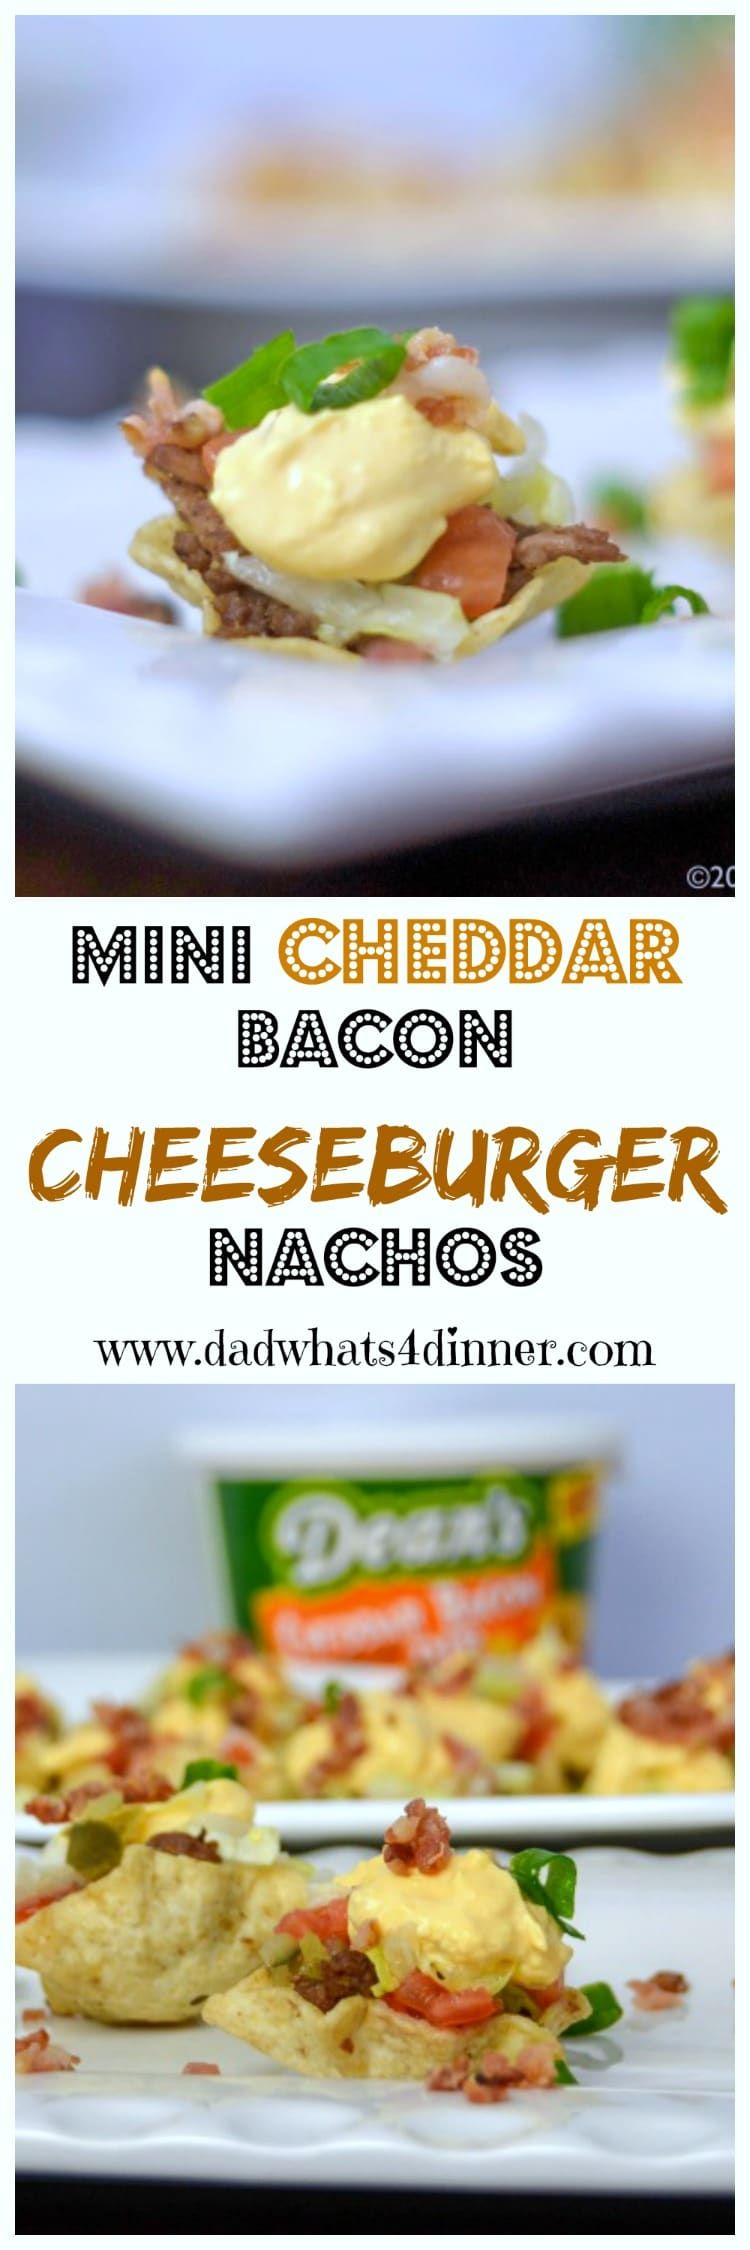 When you are craving the flavors of a cheeseburger but want finger foods instead, then my Mini Cheddar Bacon Cheeseburger Nachos are sure to please. The perfect appetizer forthe Big Game! #ad #DeansDreamBig #Gameday #appetizer #cheeseburgers #nachos #dips #tailgating #Easy #Recipe @sofabfood www.dadwhats4dinner.com via @dadwhats4dinner